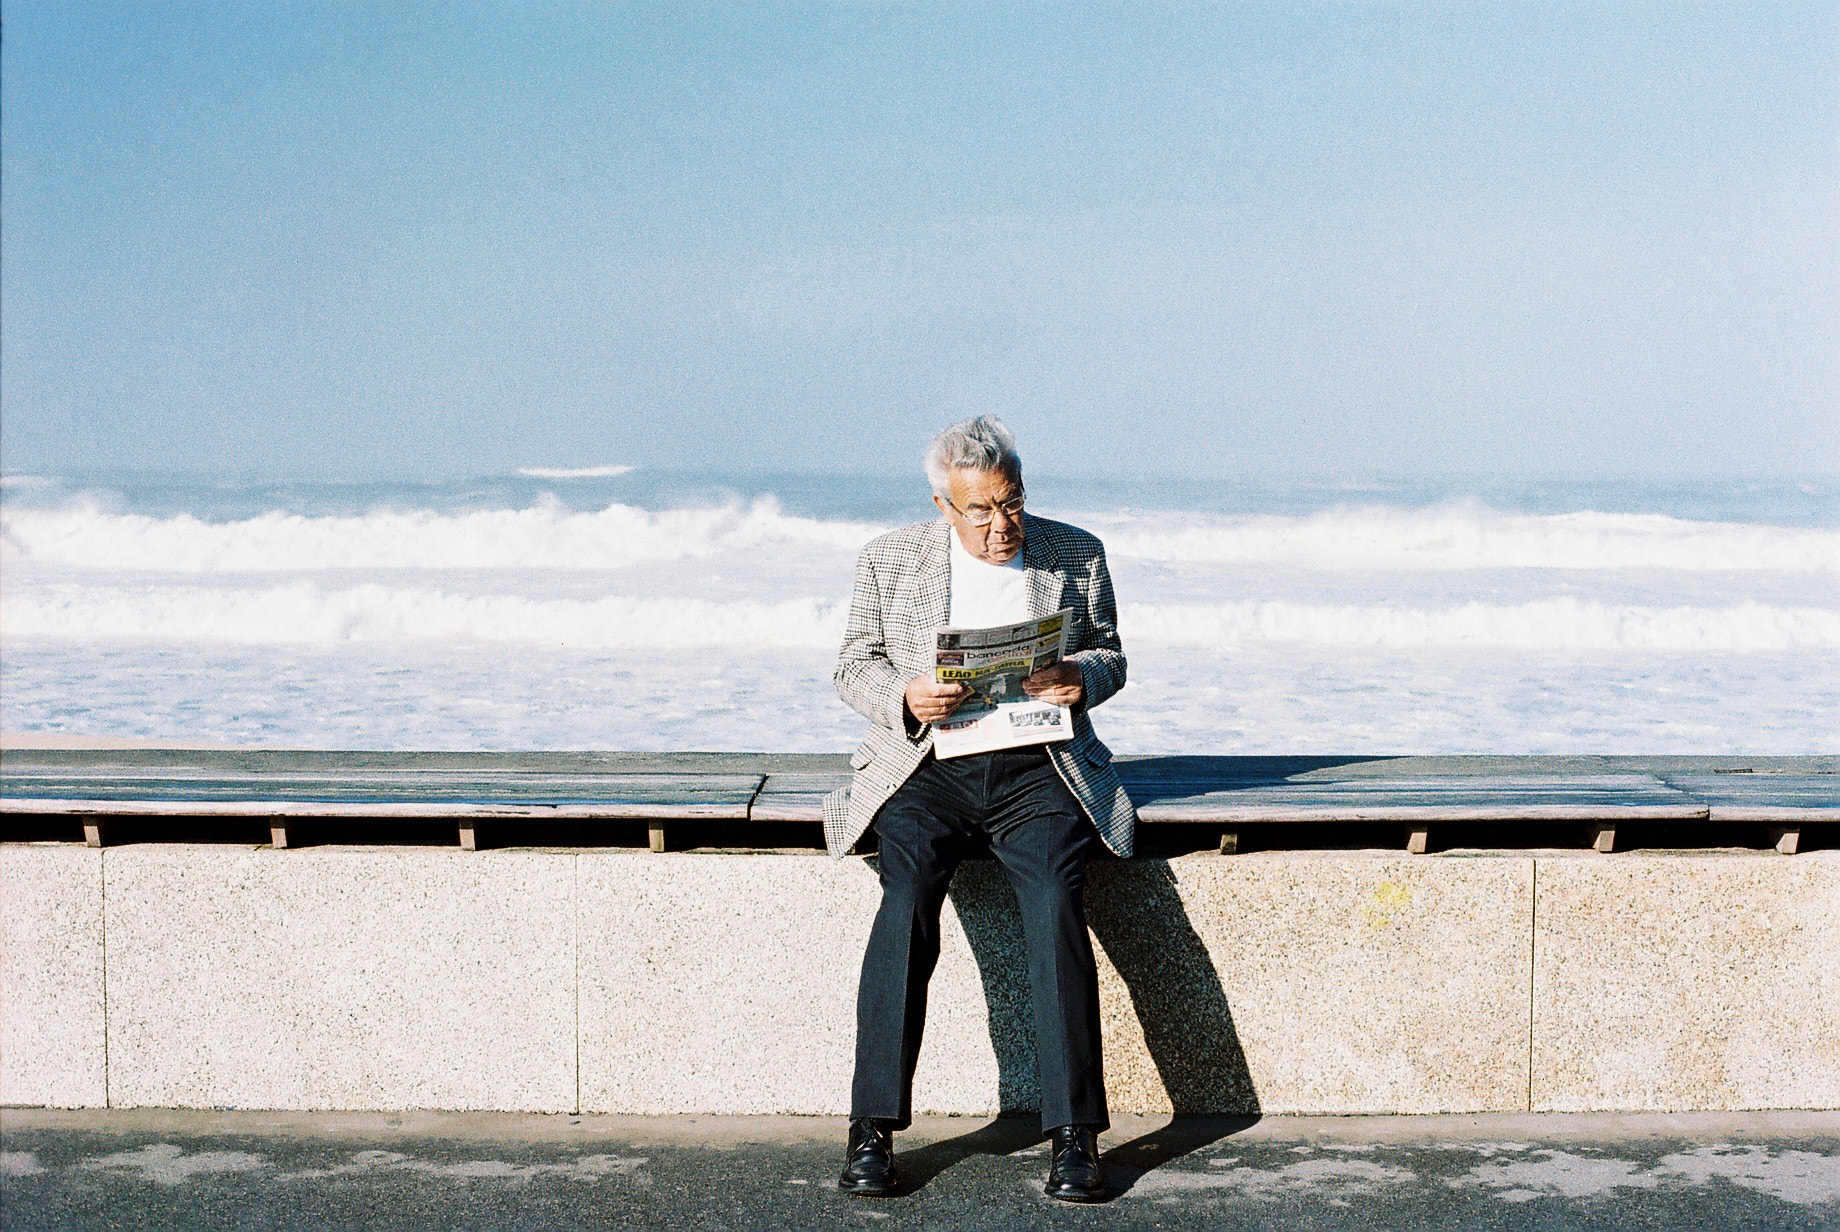 Photograph The Old Man and the Sea by Miguel Pires da Rosa on 500px